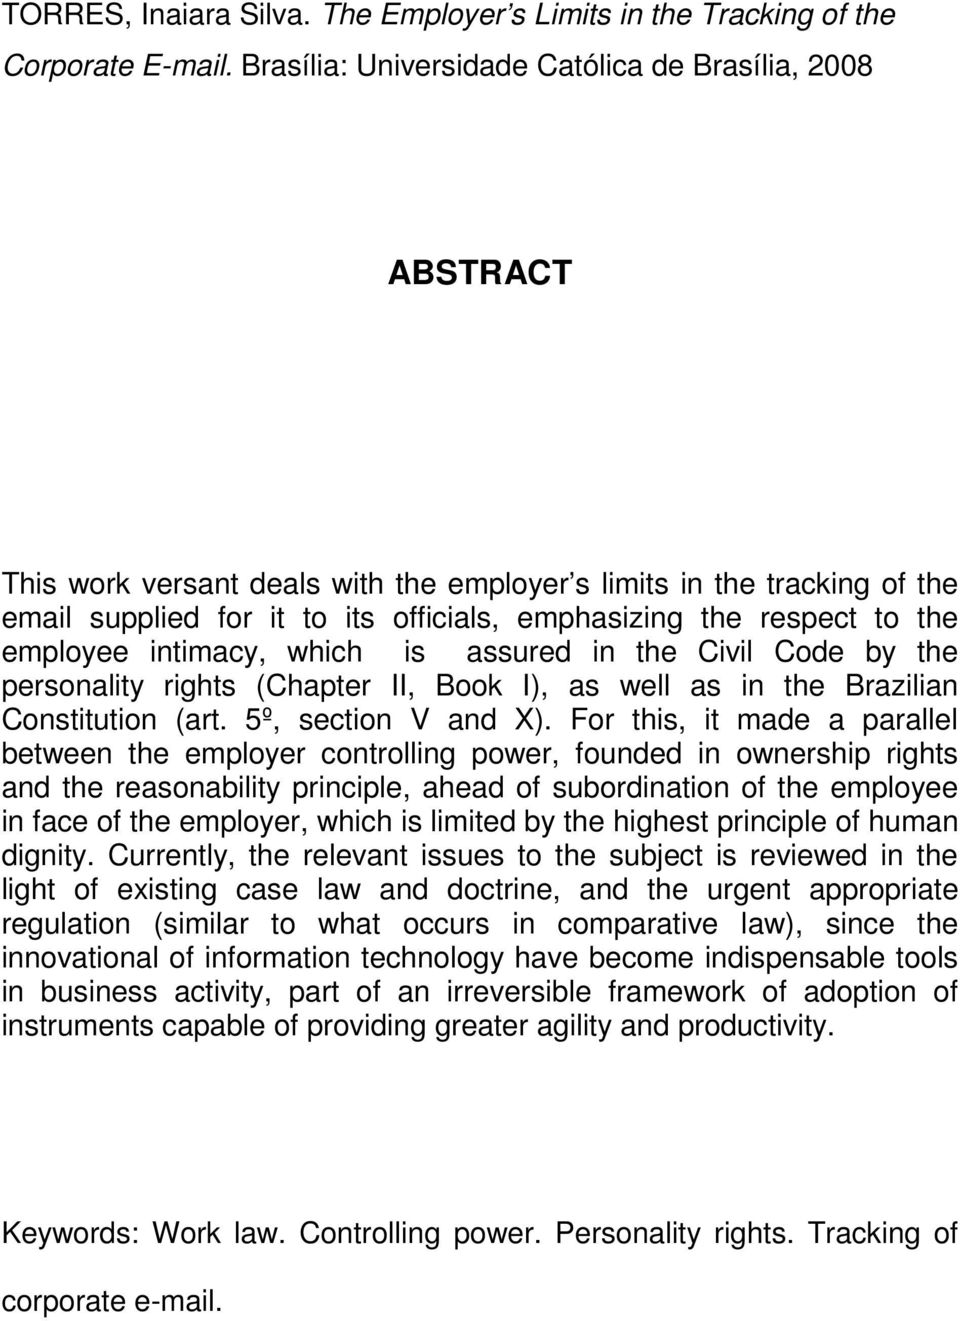 the employee intimacy, which is assured in the Civil Code by the personality rights (Chapter II, Book I), as well as in the Brazilian Constitution (art. 5º, section V and X).